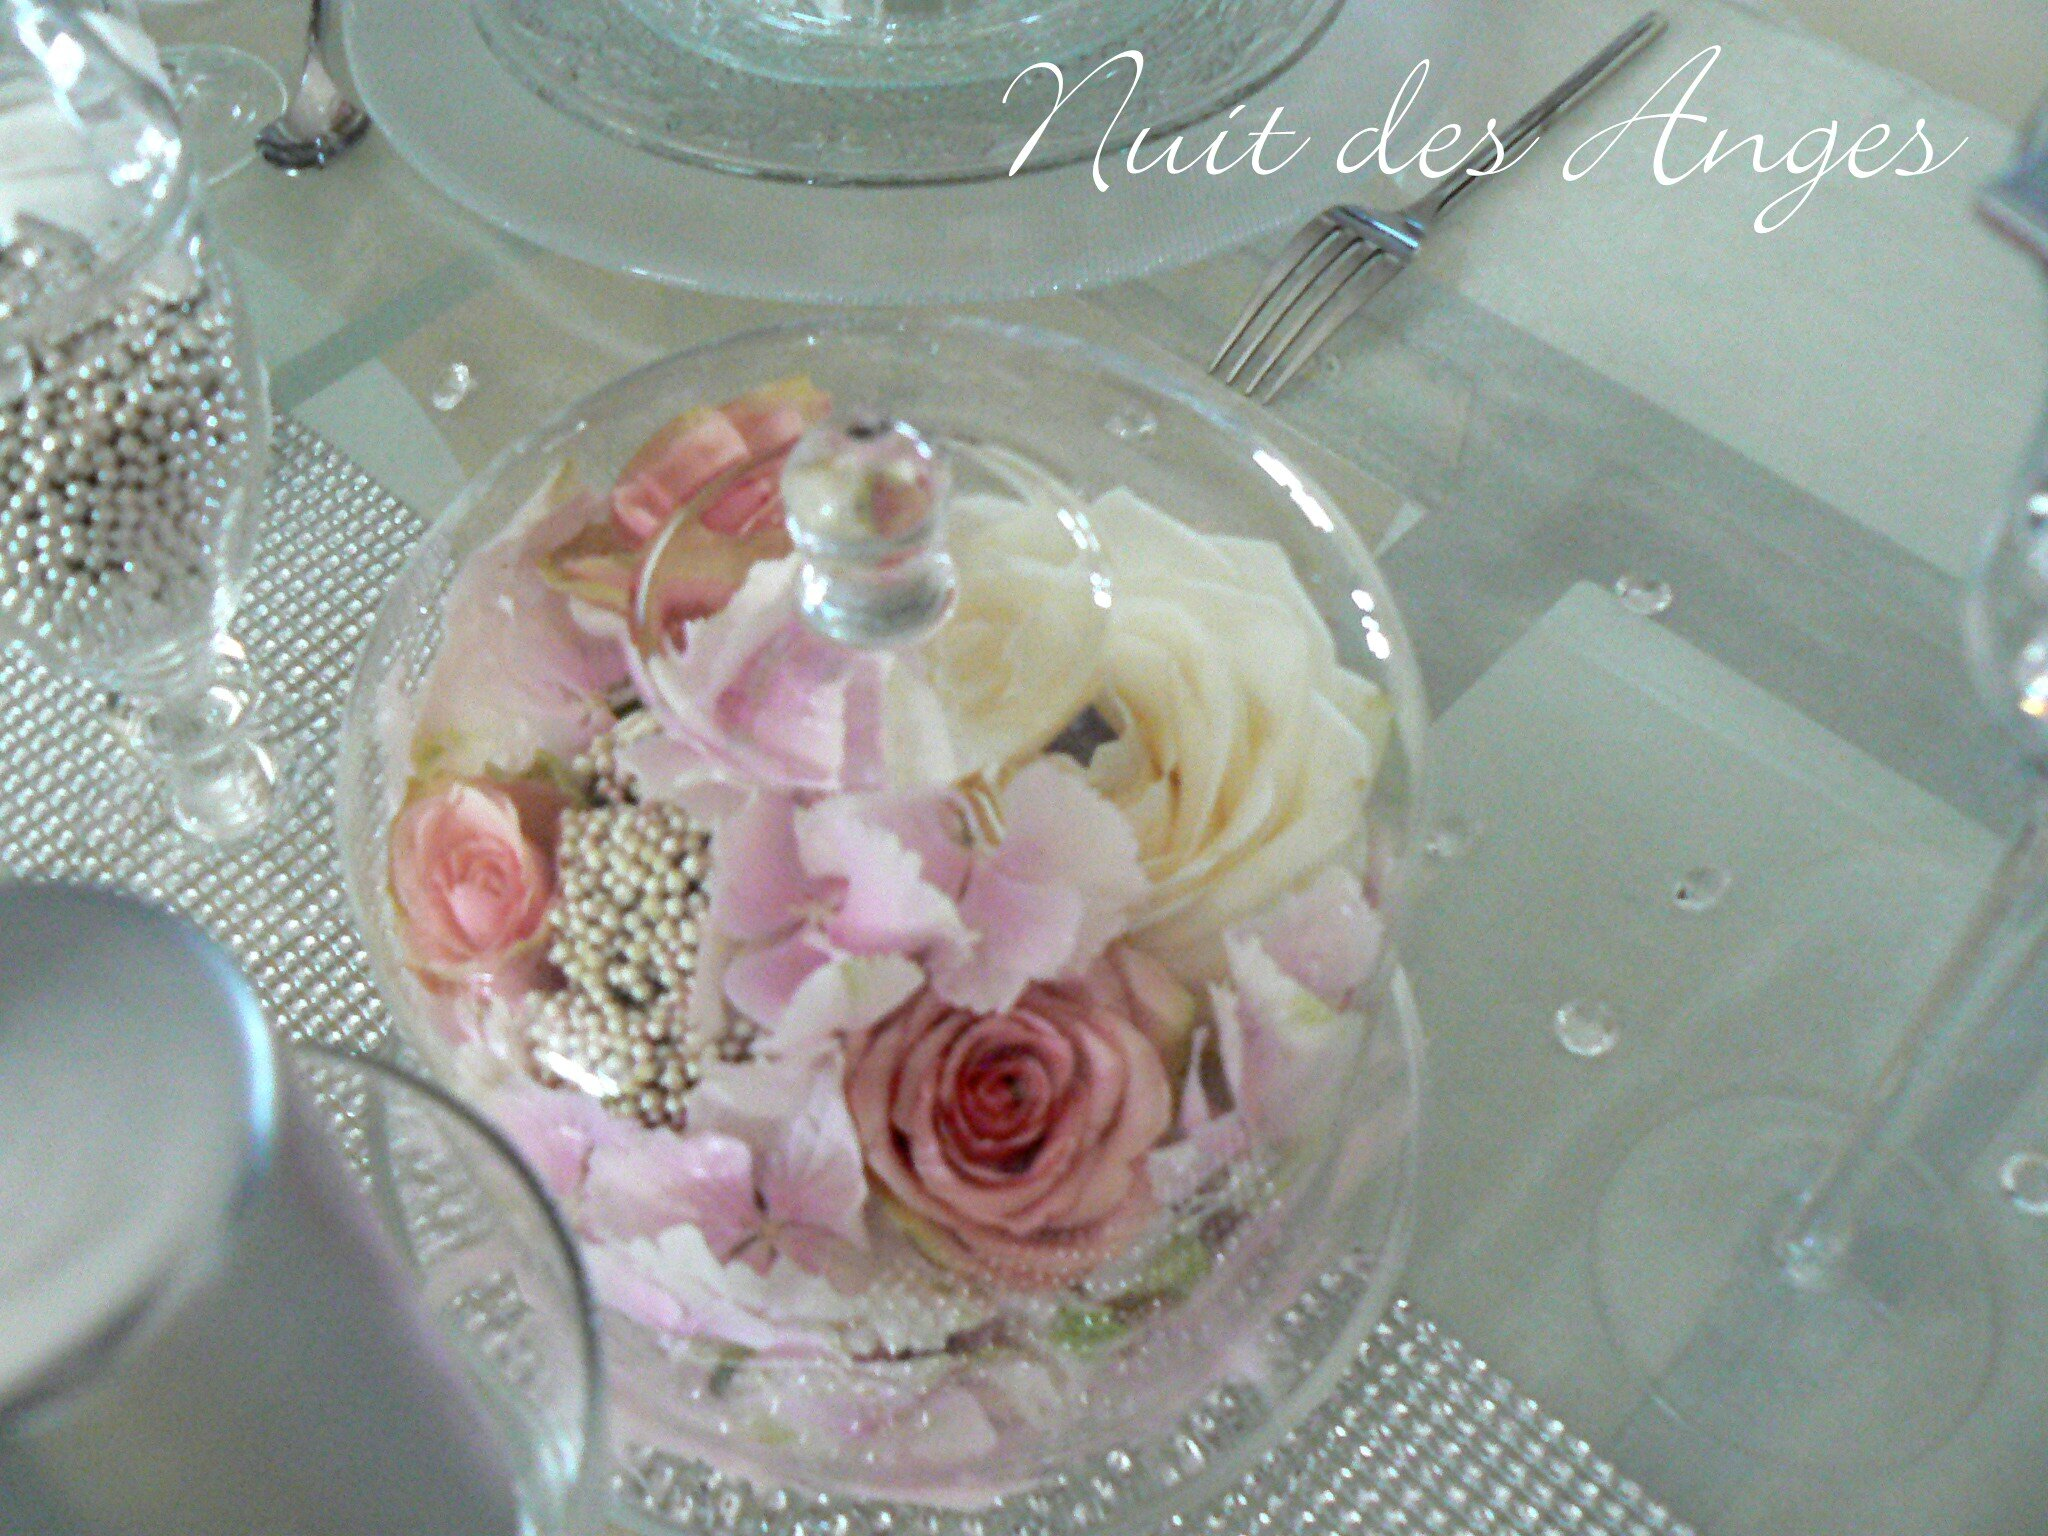 D coration de table rose et gris nuit des anges for Deco rose et gris